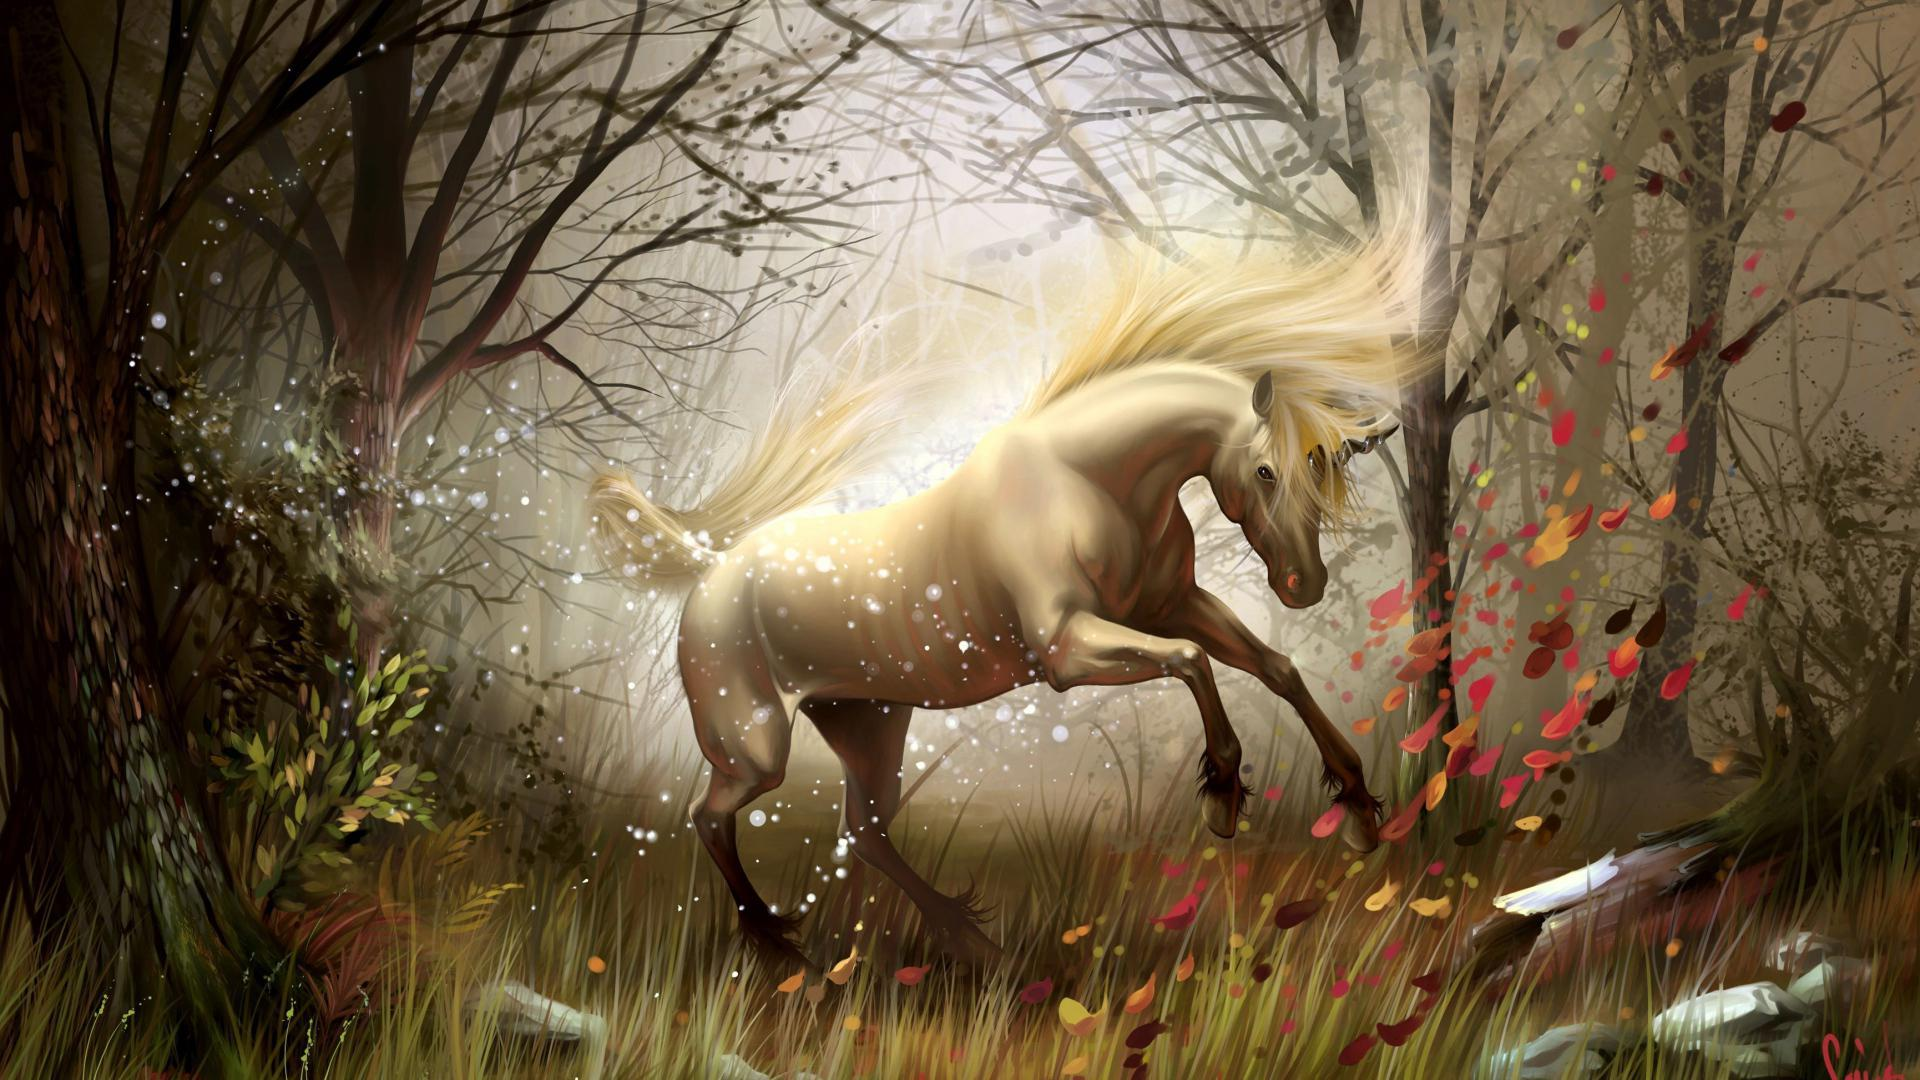 unicorn wallpapers full hd - photo #28